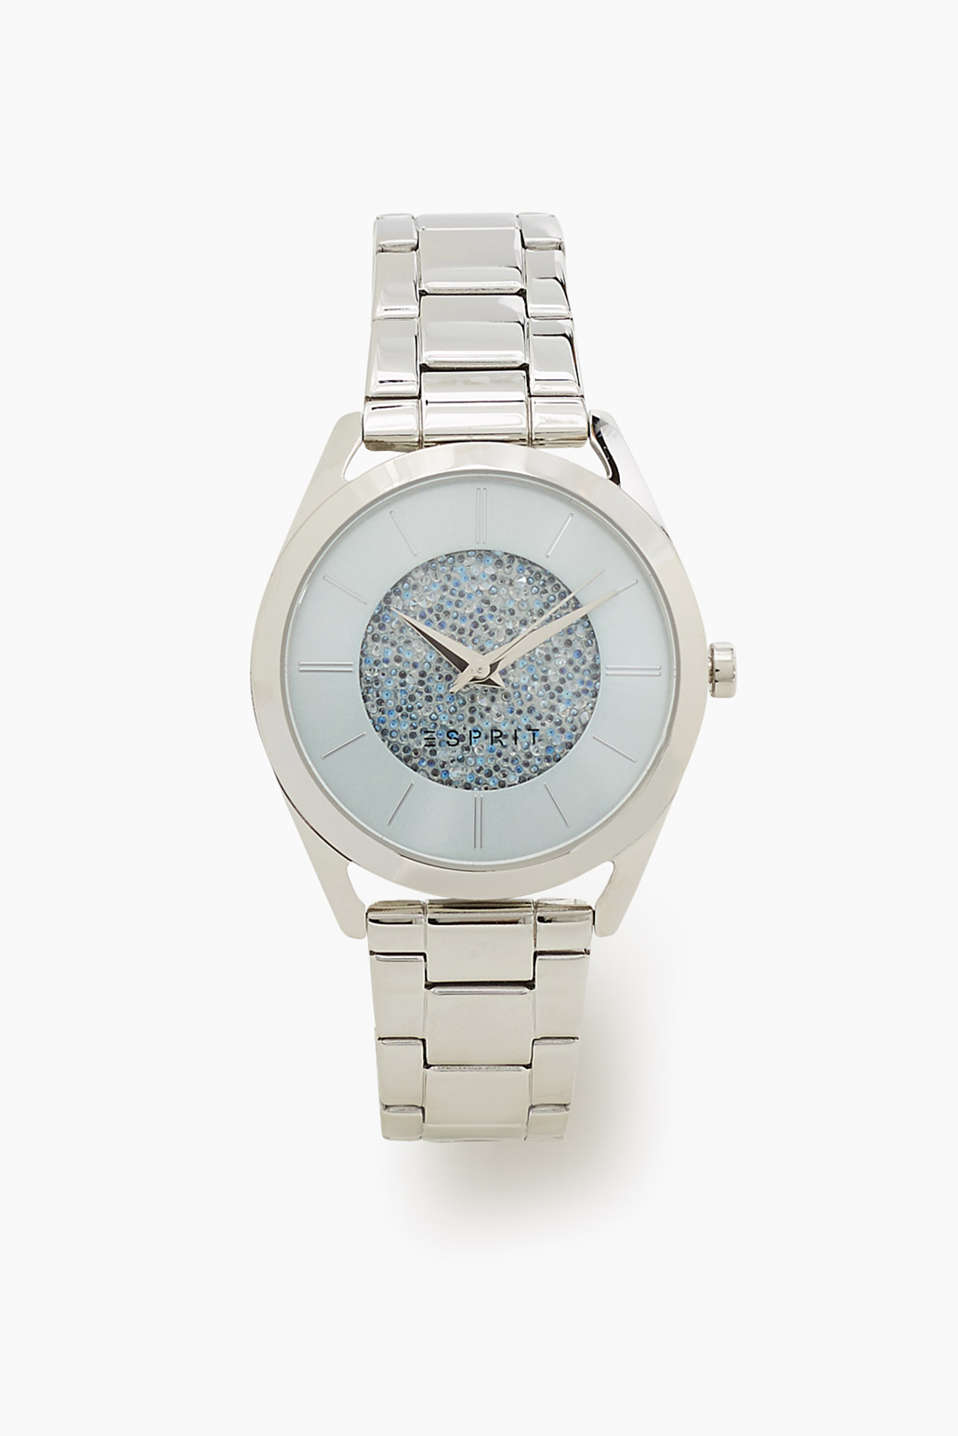 Stainless steel watch in a timeless silver tone